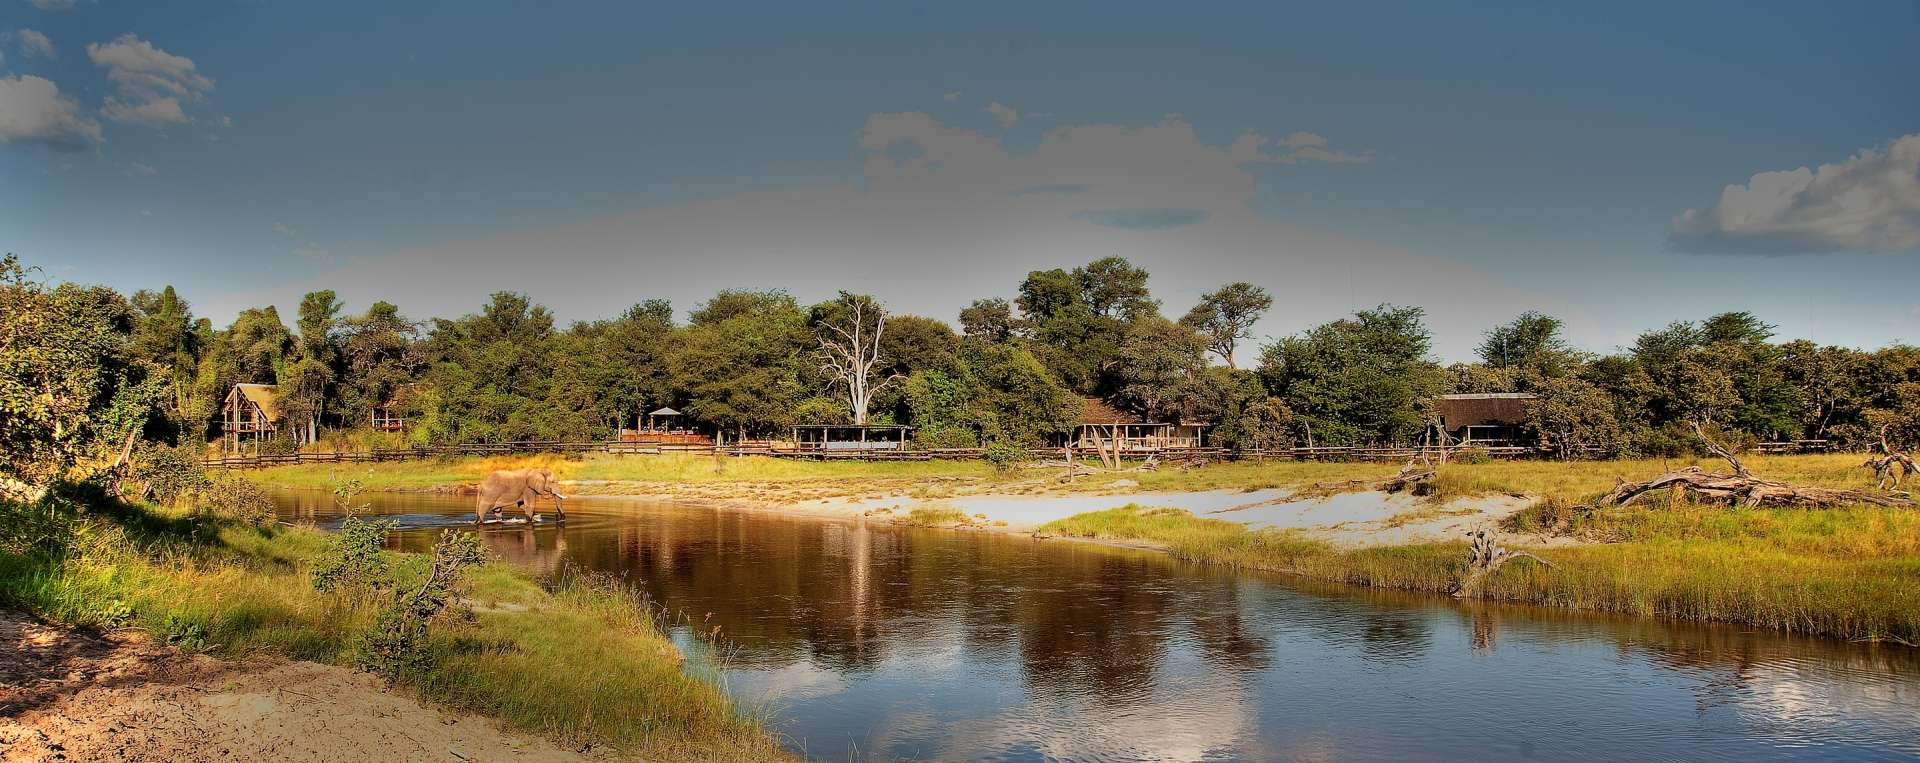 Savuti is nestled in a remote region of Chobe